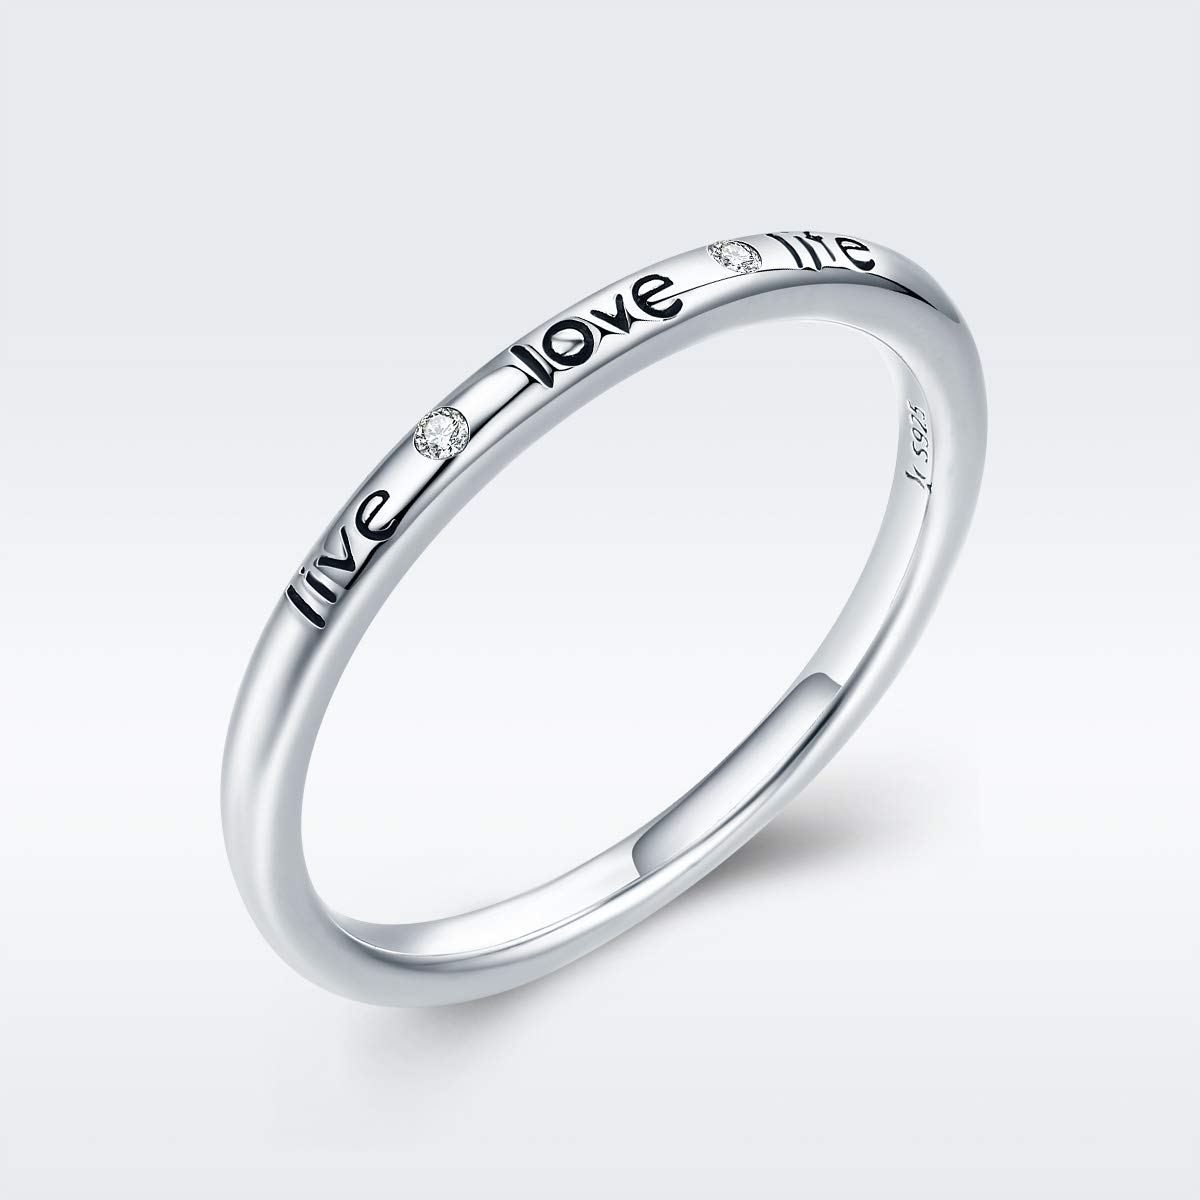 Clear CZ The Kiss Live Love Life Letter Engrave 925 Sterling Silver Ring